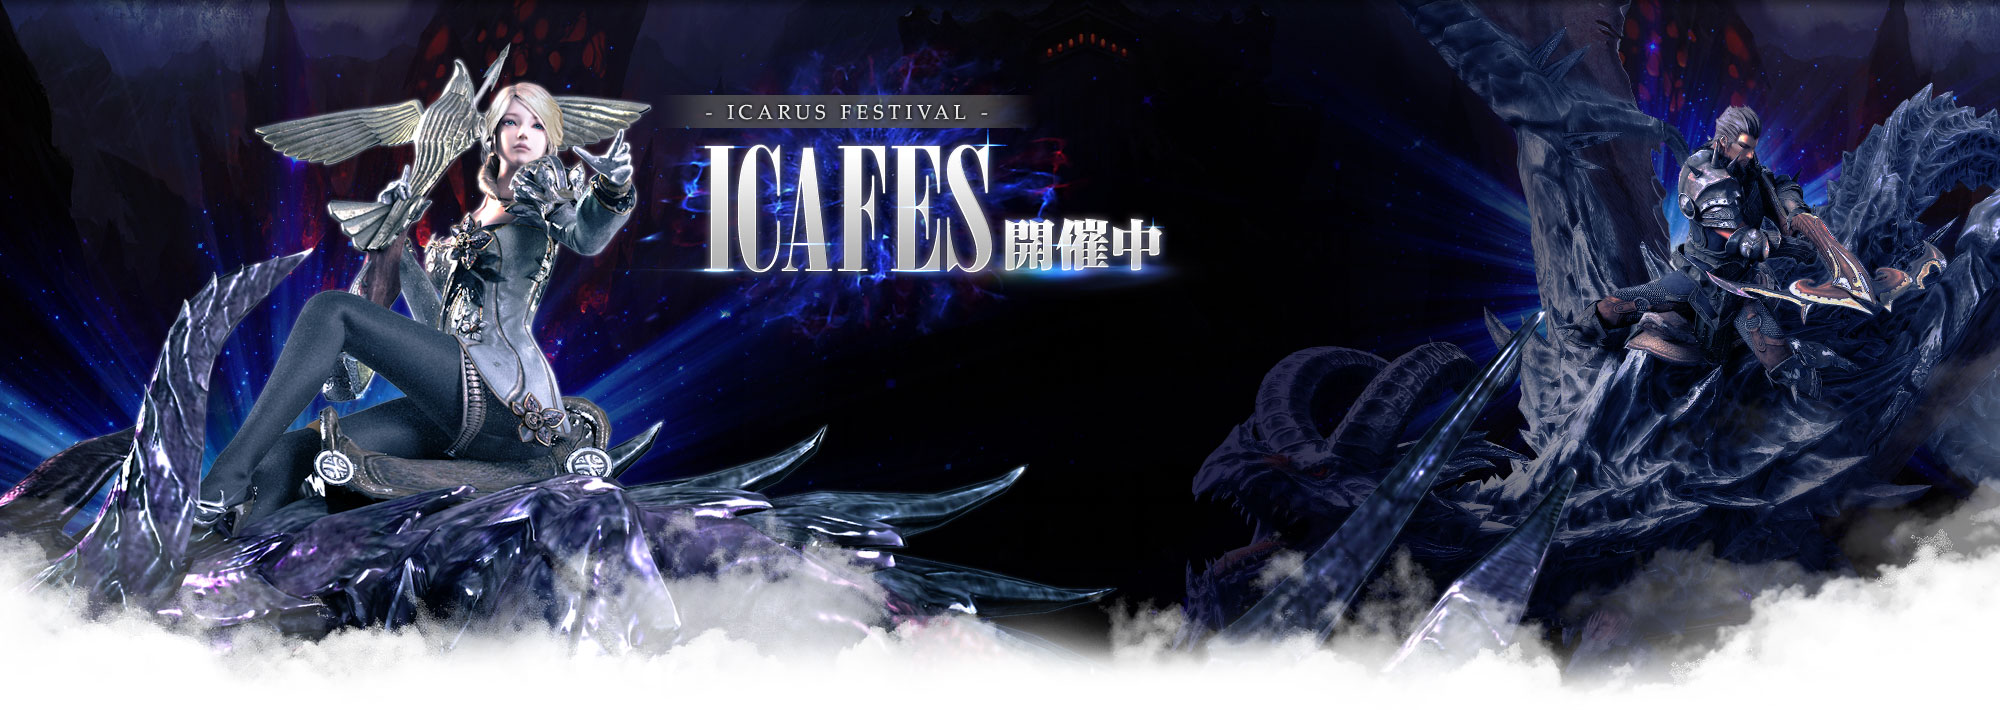 ICAFES